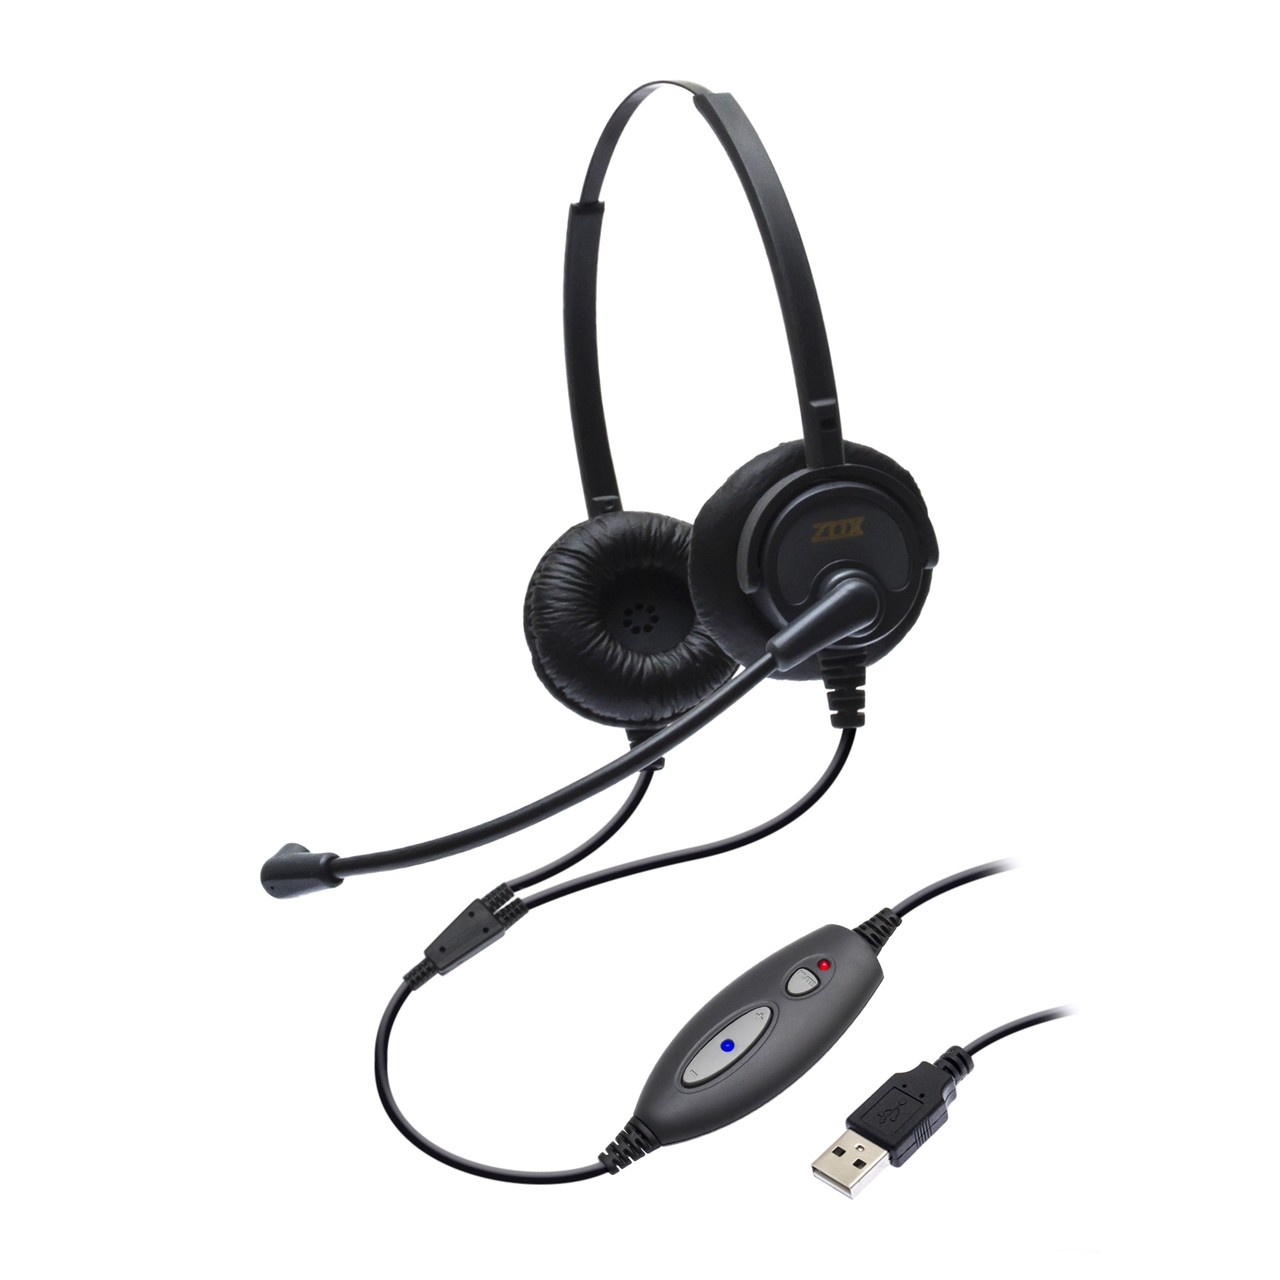 Headset USB DH-60D Biauricular - Zox